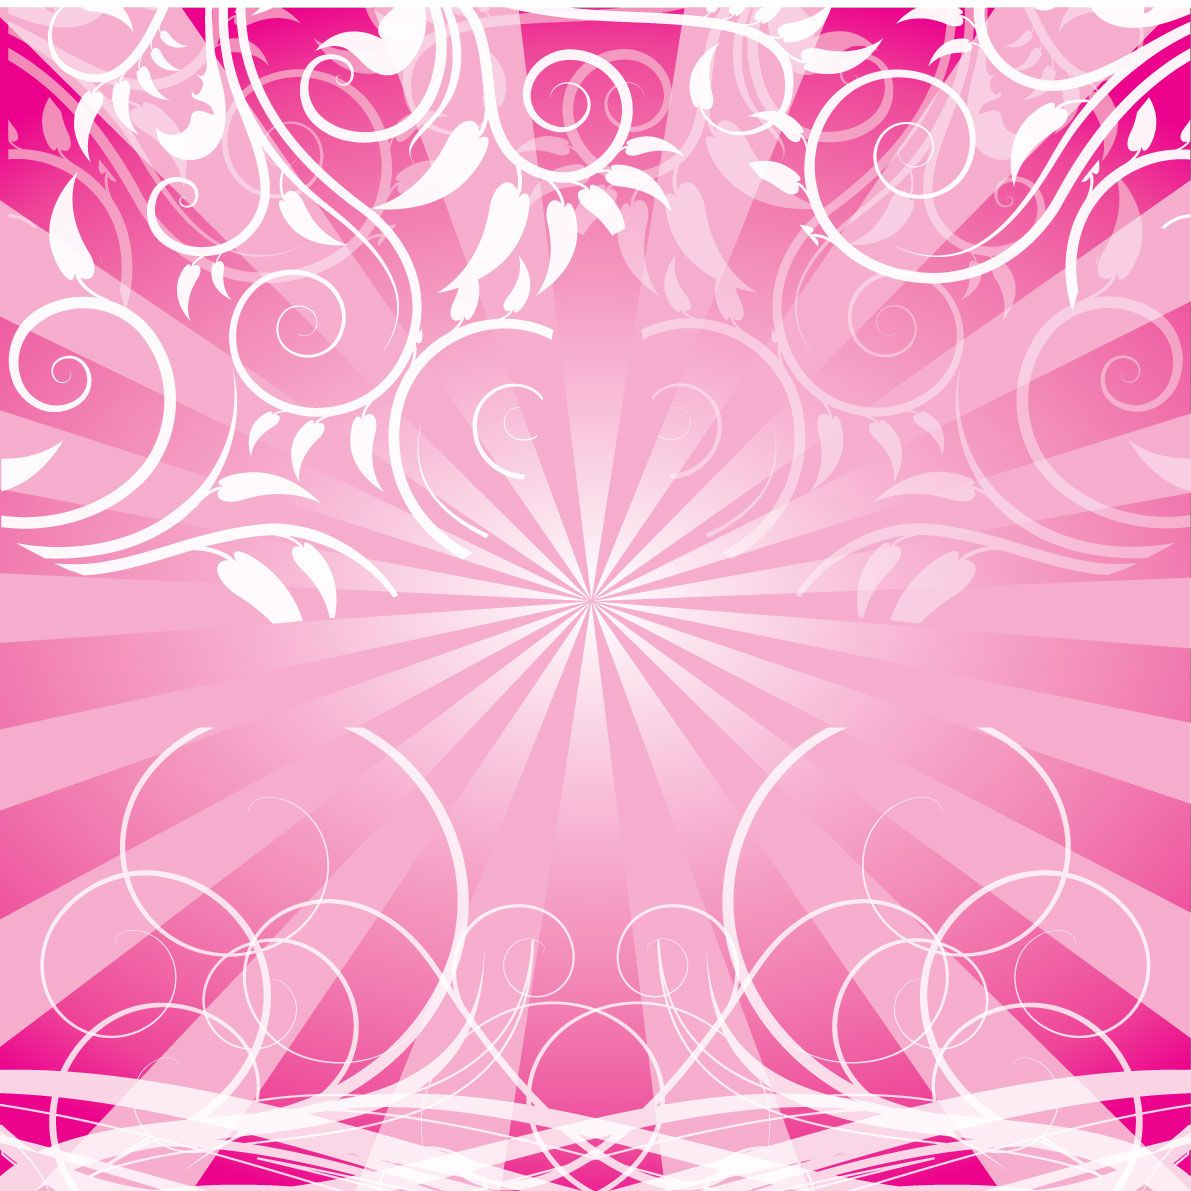 Undefined With Images Free Vector Art Pink Abstract Pink Design